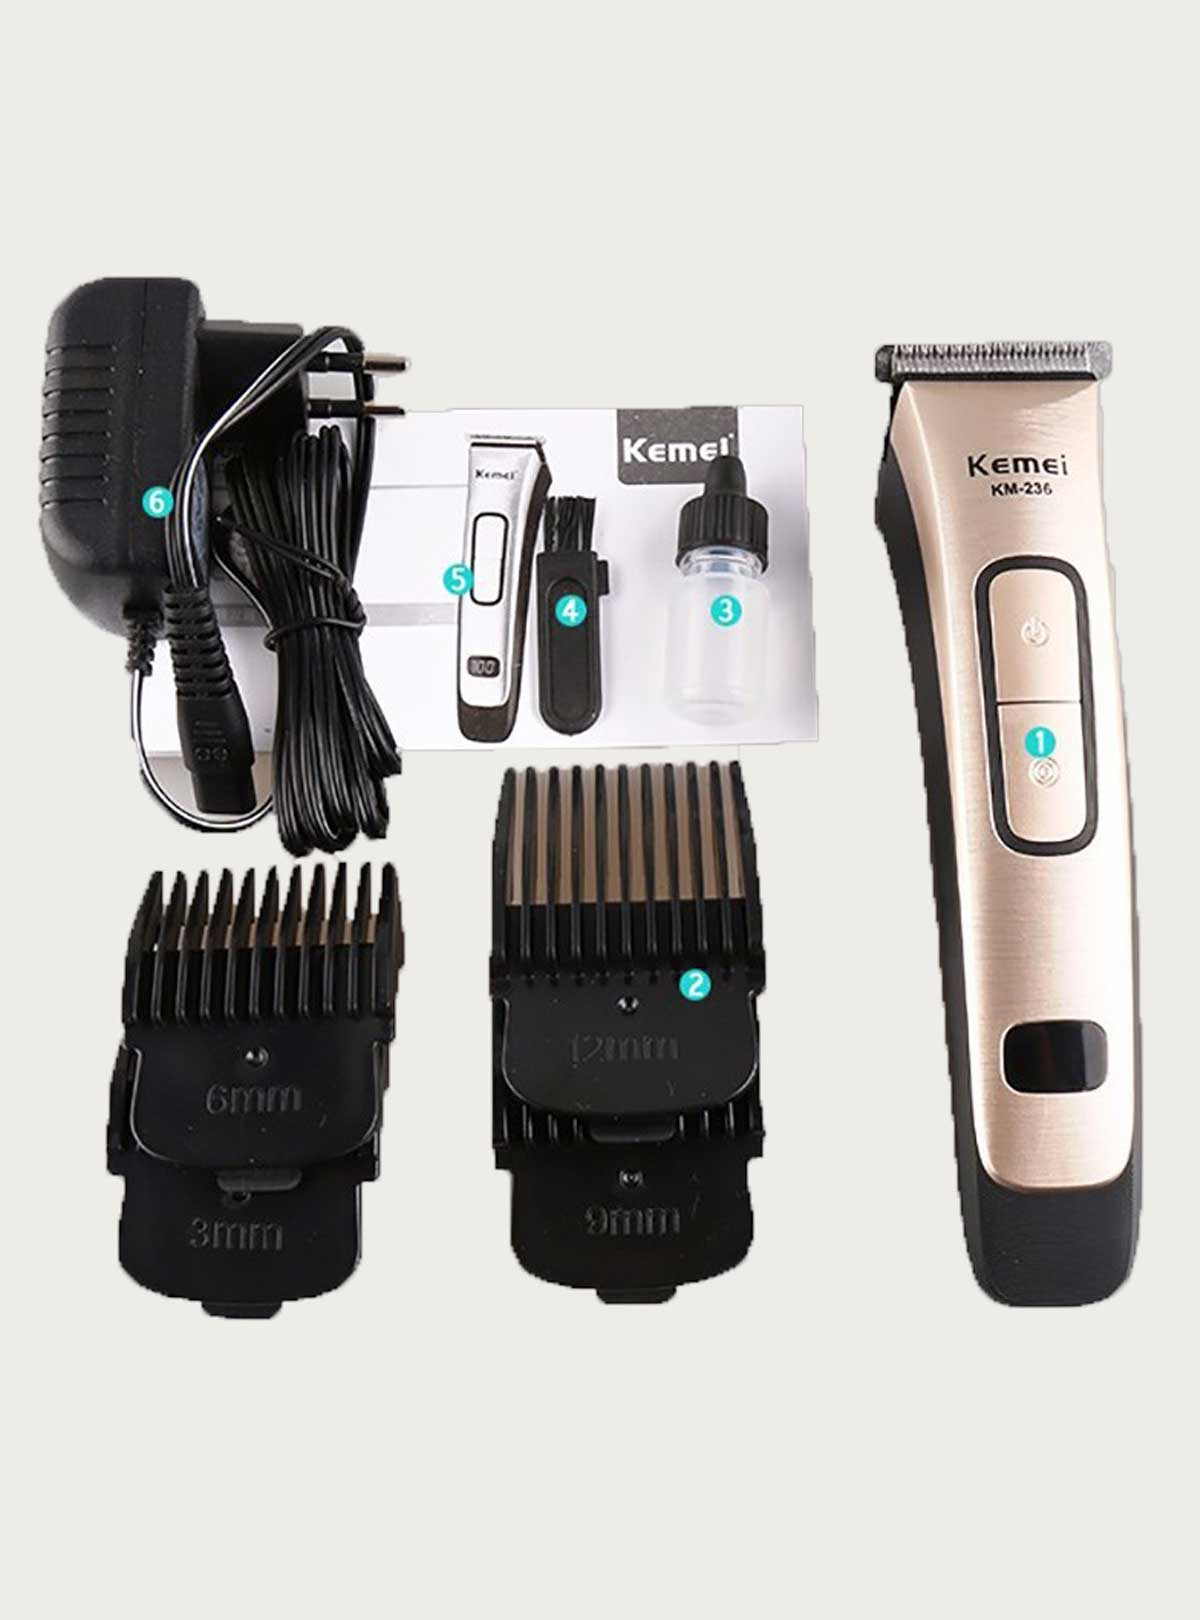 Kemei KM-236 Professional Rechargeable Electric Hair Clipper & Trimmer